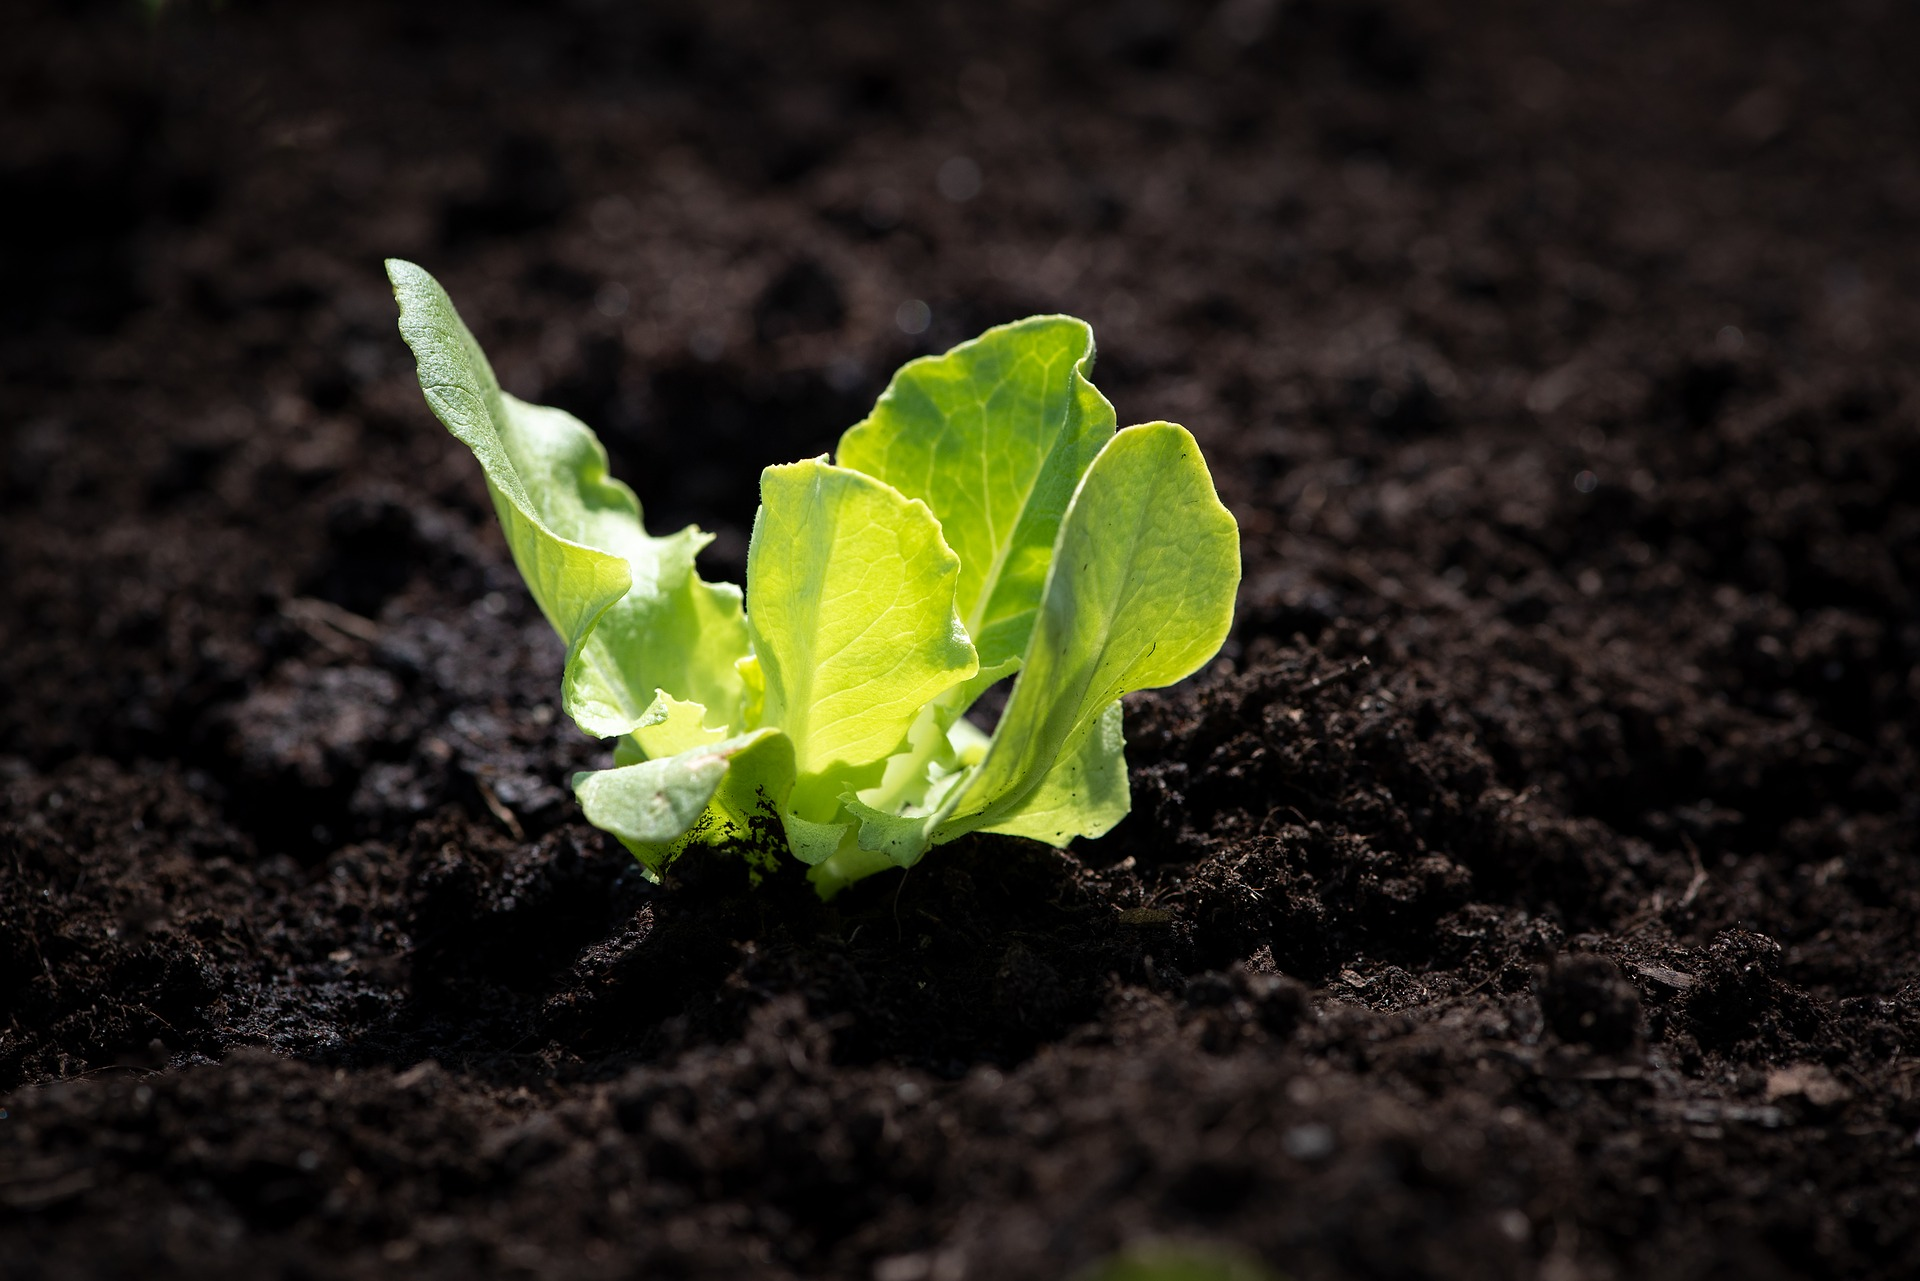 Lettuce seedling stemming out of dark brown soil.